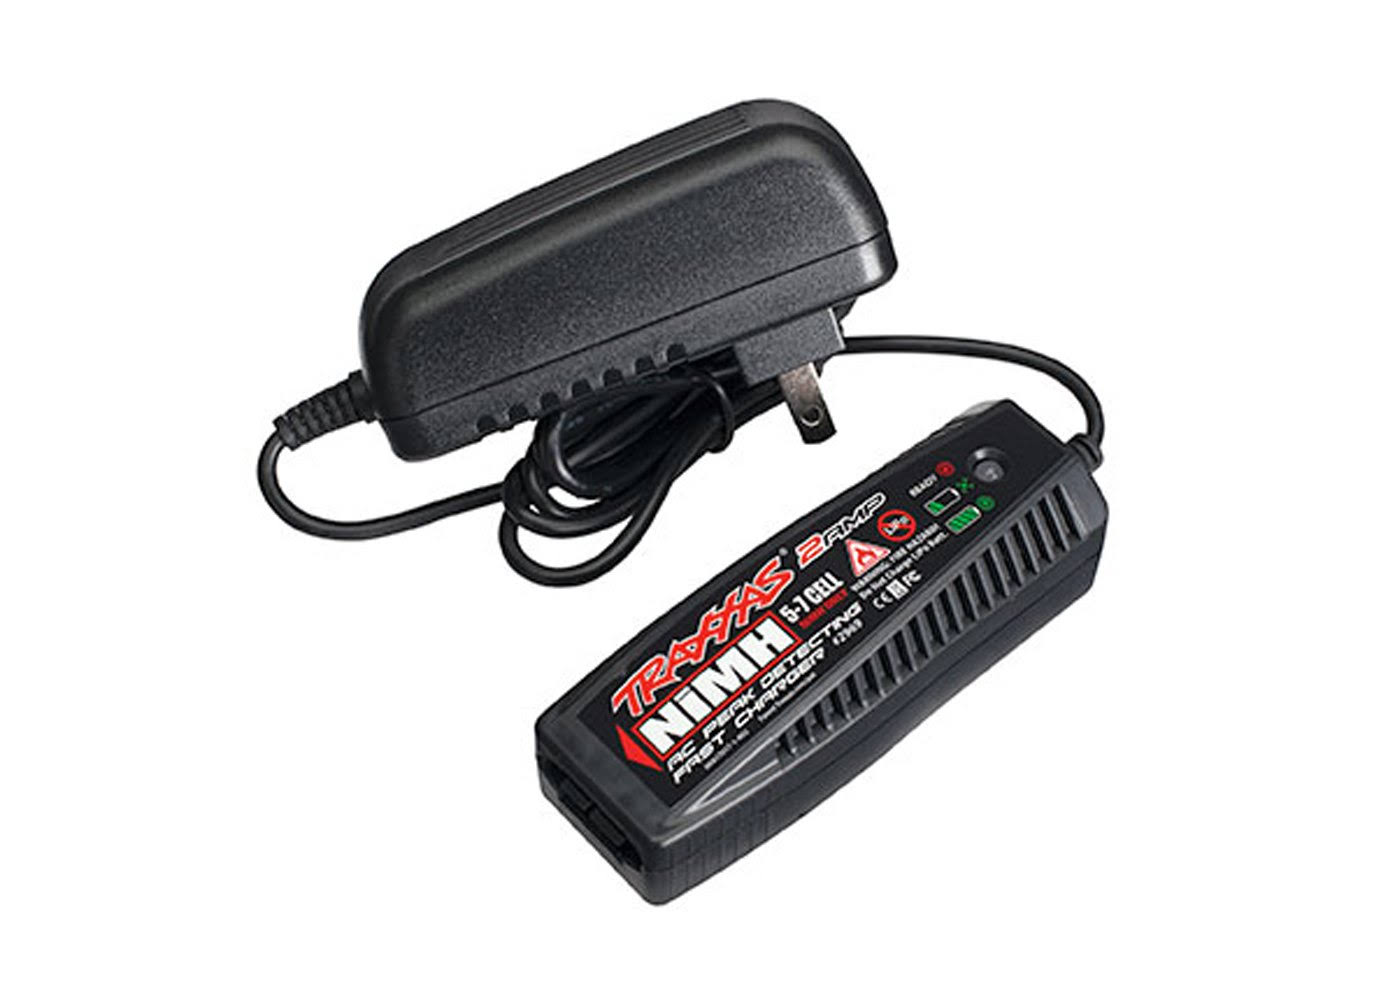 Traxxas 2-Amp AC Peak-Detecting 5-7 Cell NiMH Battery Fast Charger (2969)